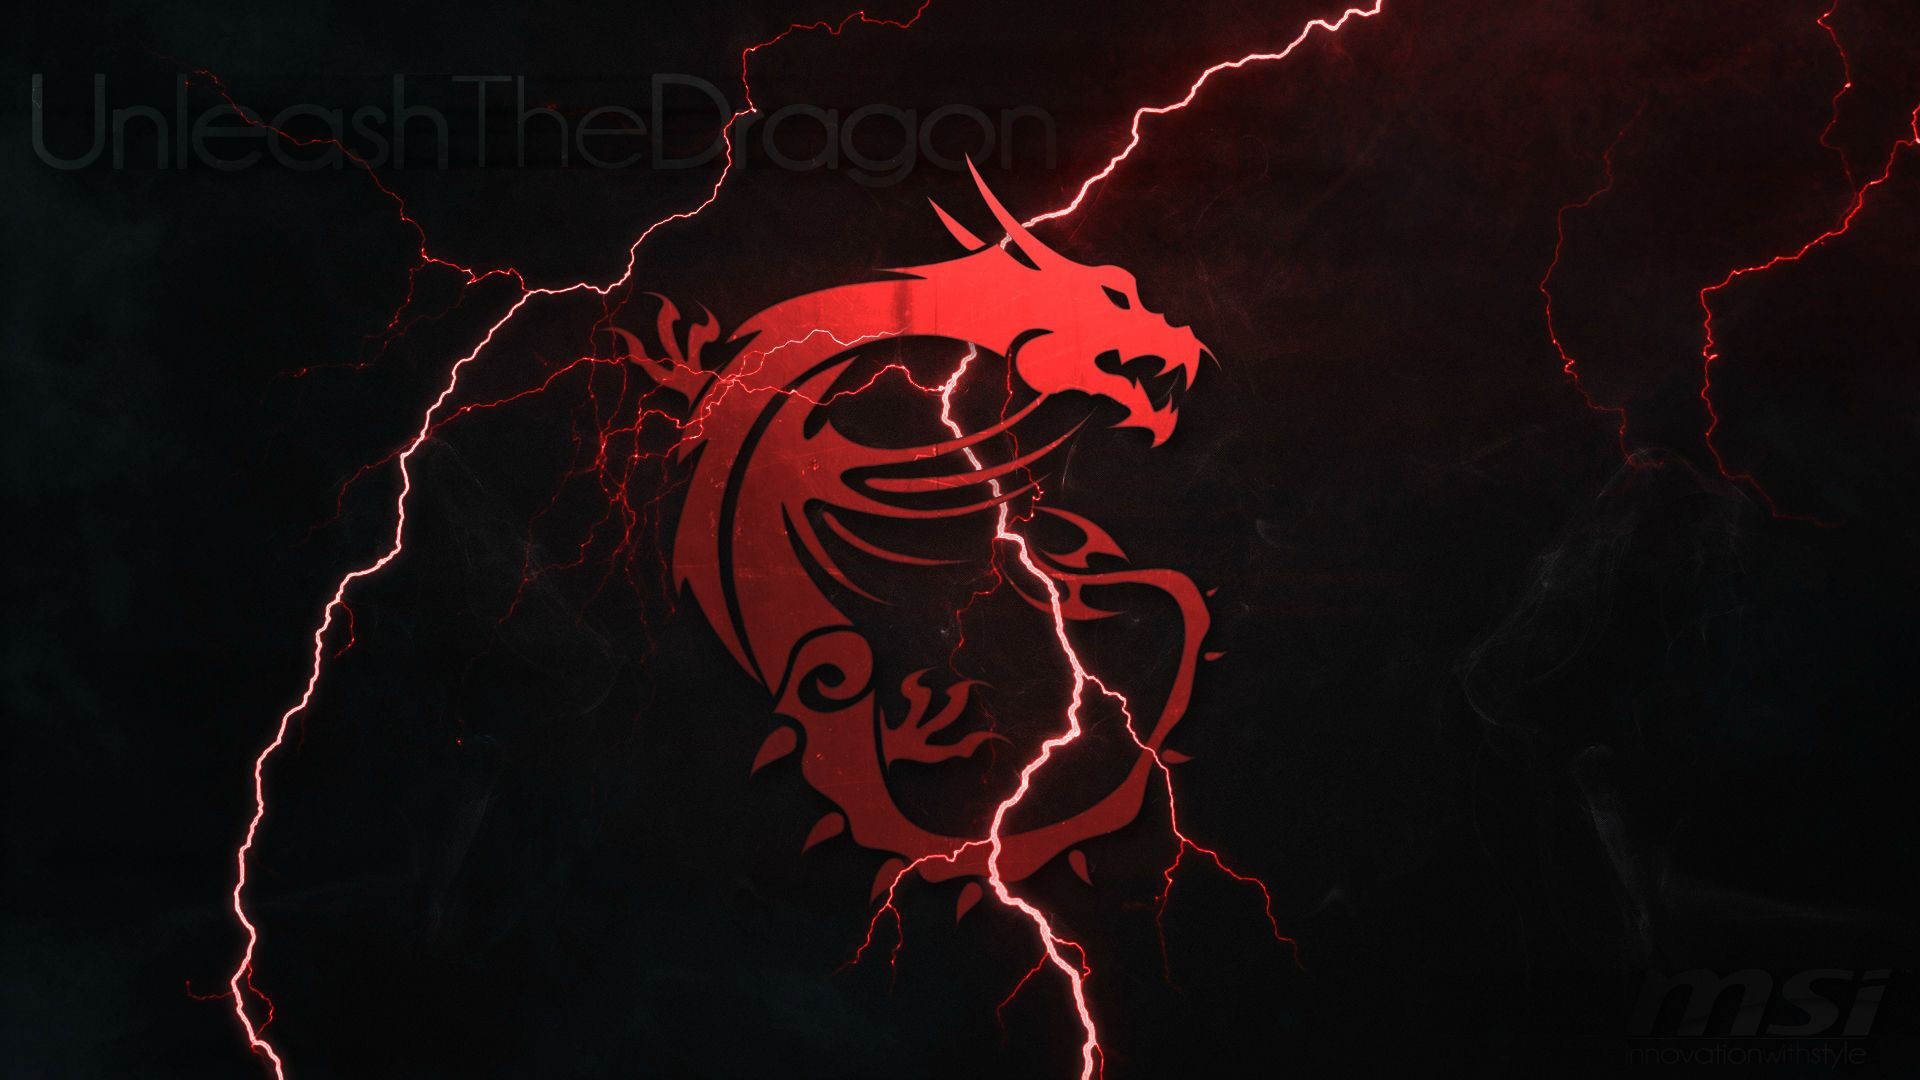 MSI 1366x768 Wallpapers  WallpaperSafari